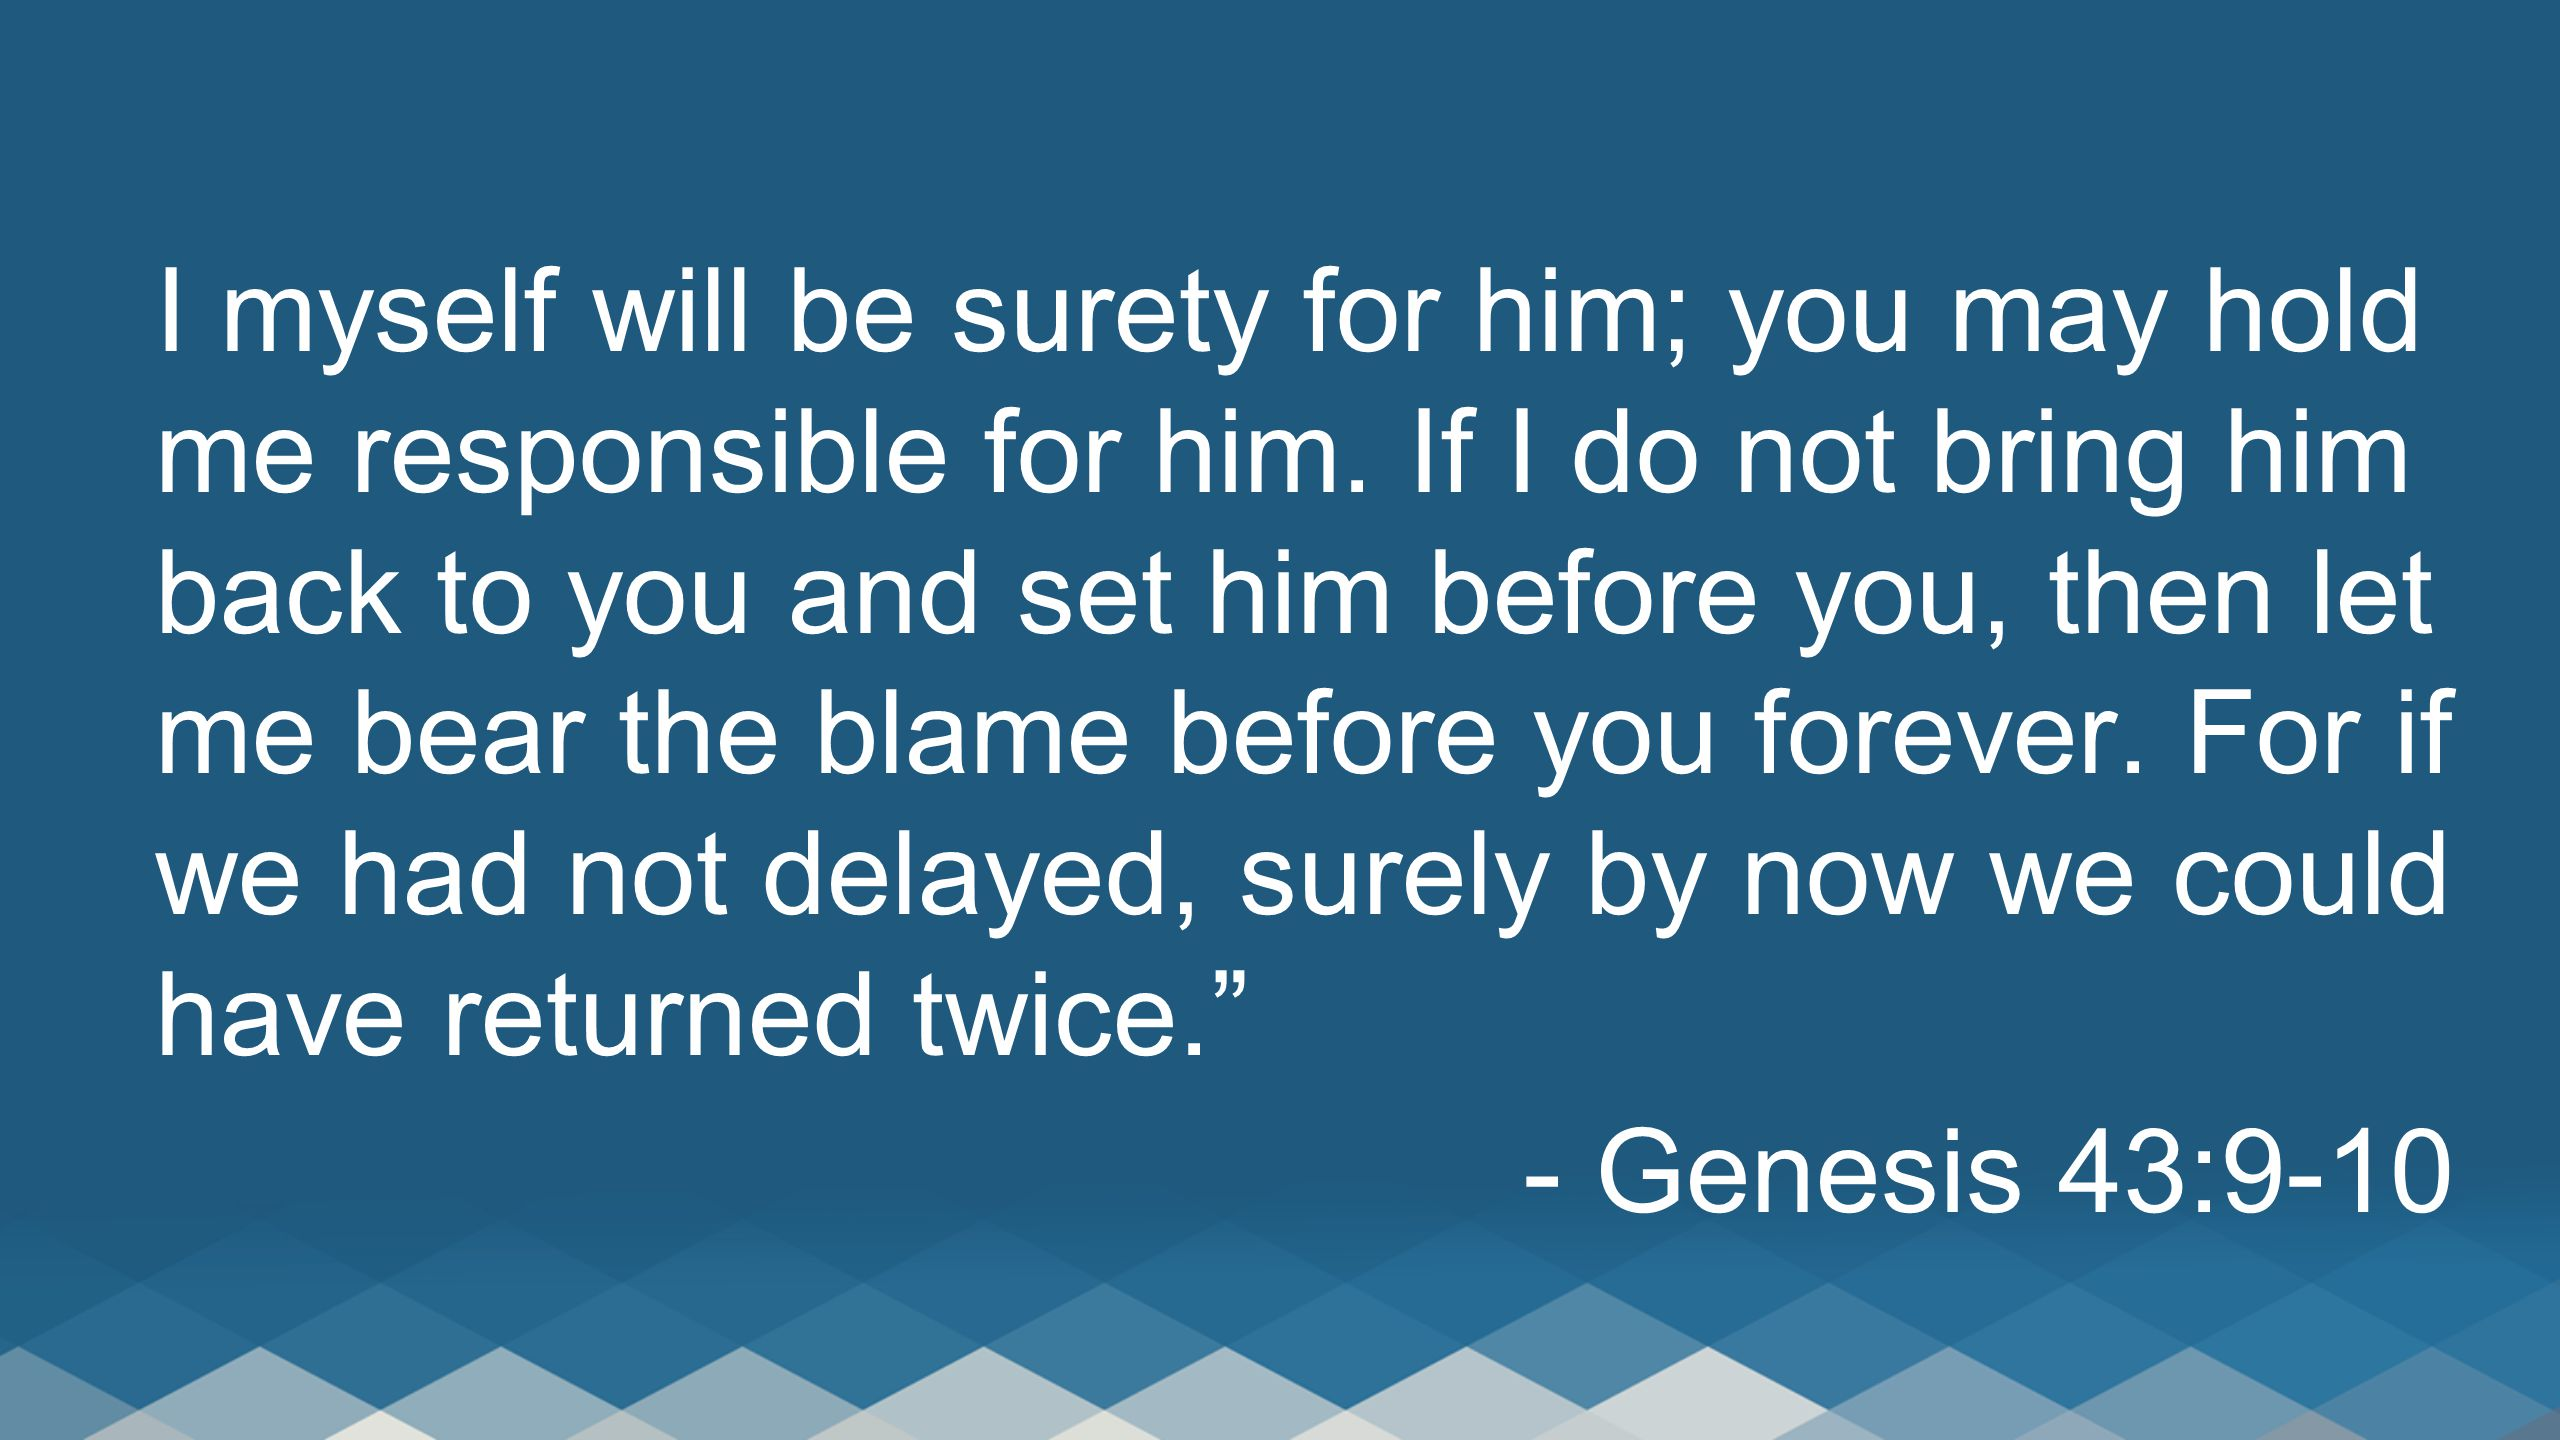 I myself will be surety for him; you may hold me responsible for him